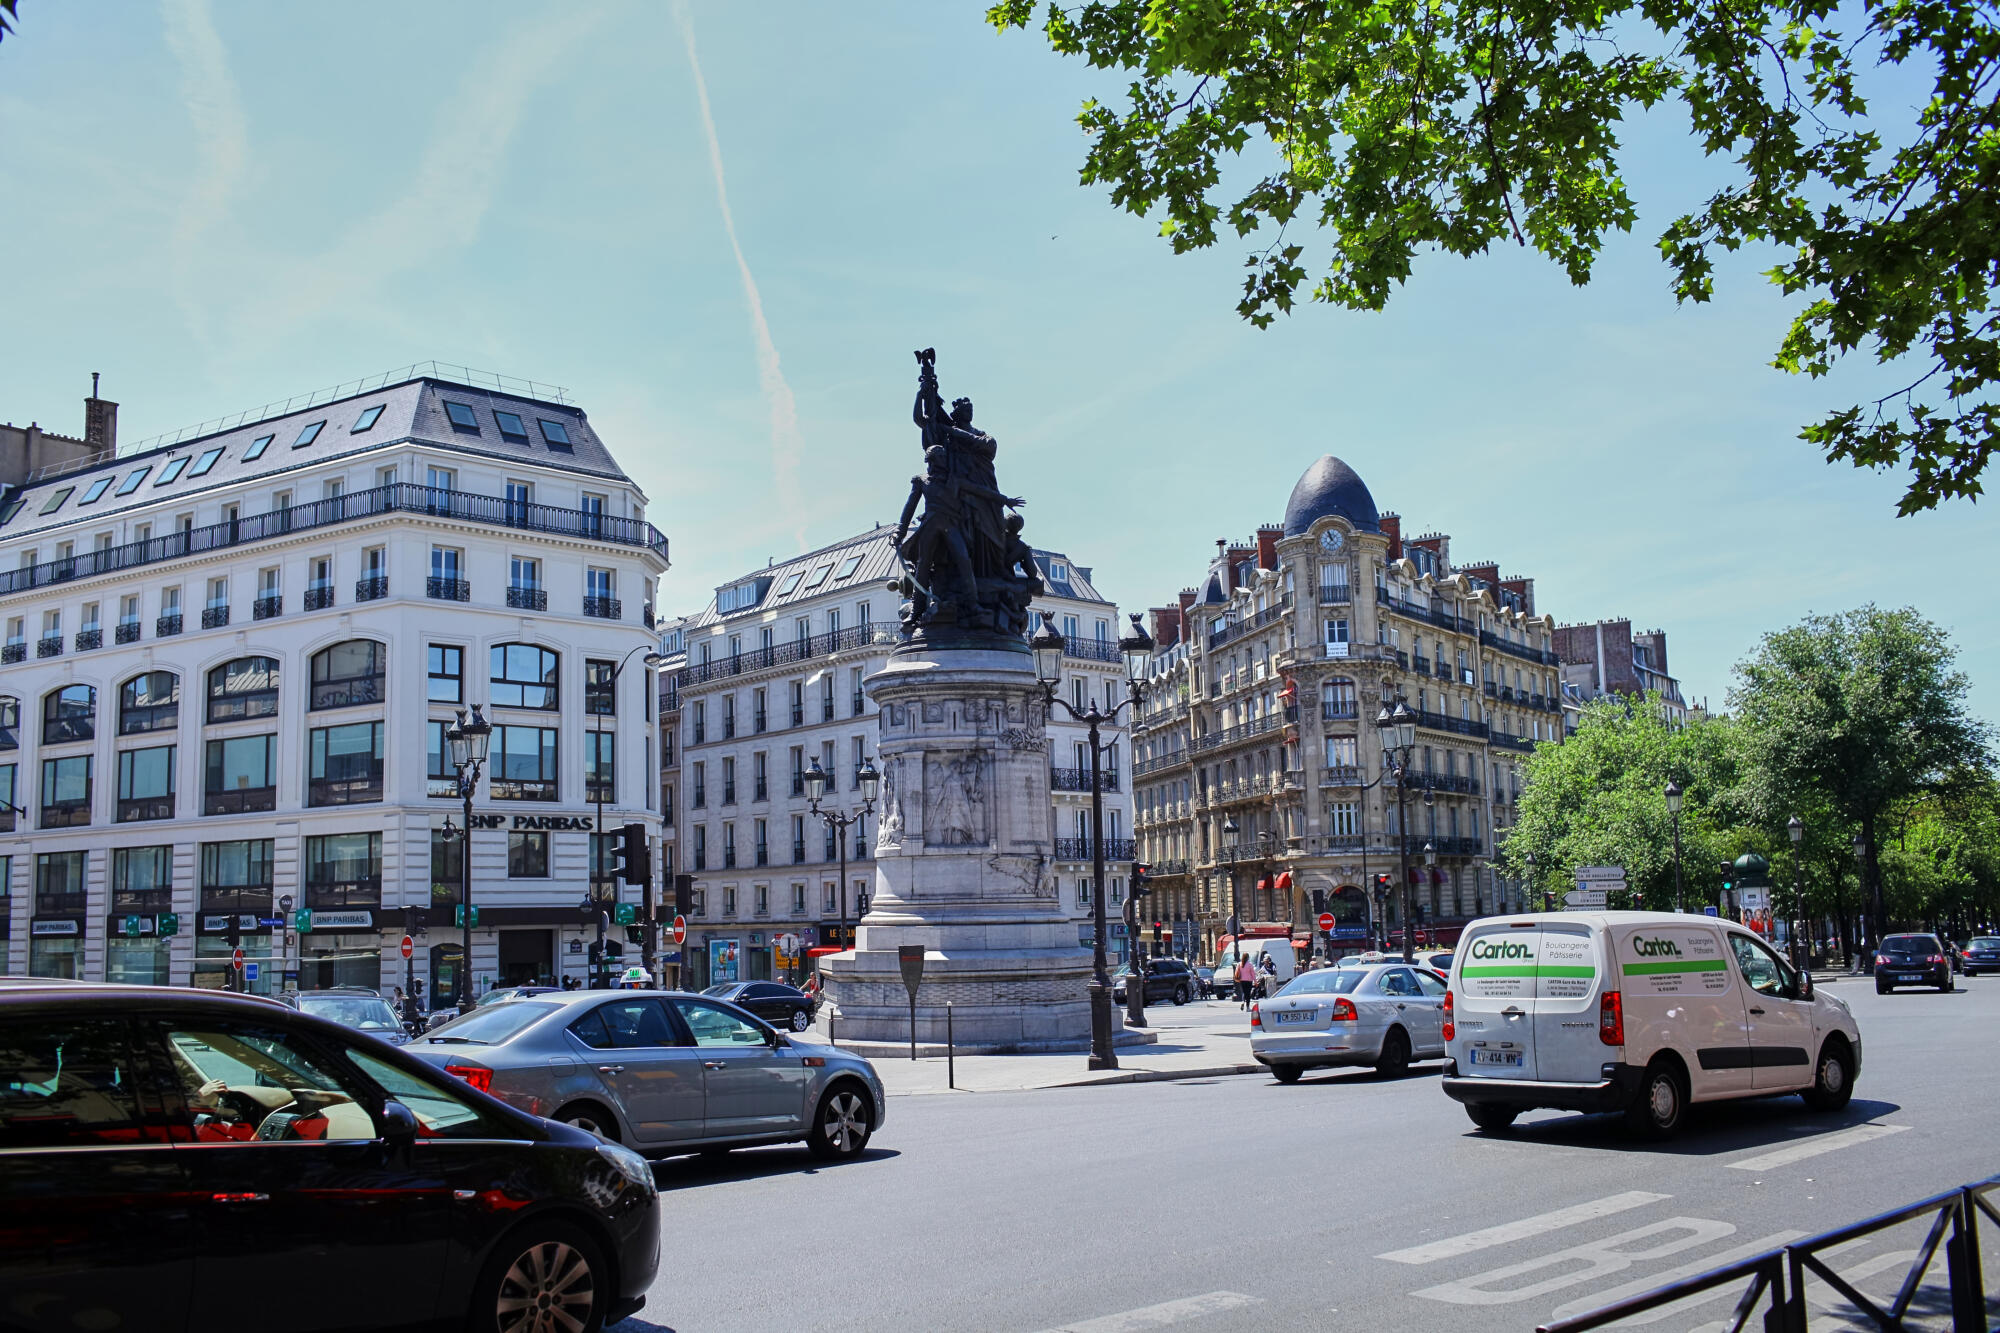 France adapts traffic regulations to automated vehicles